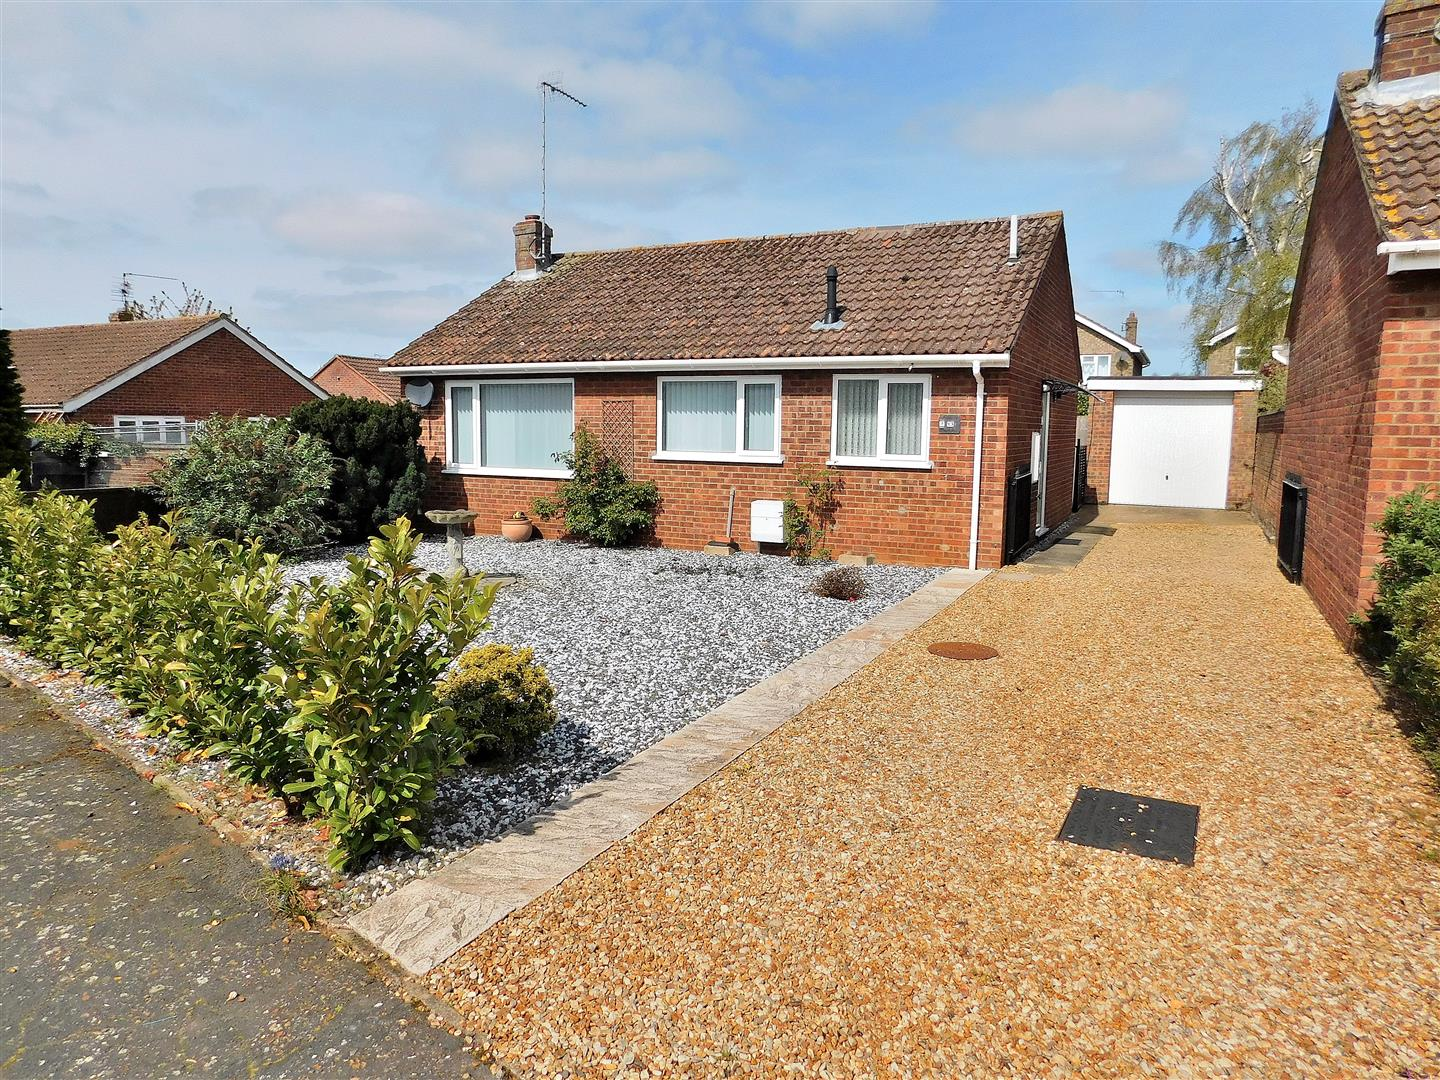 2 bed detached bungalow for sale in Tudor Way, King's Lynn, PE31